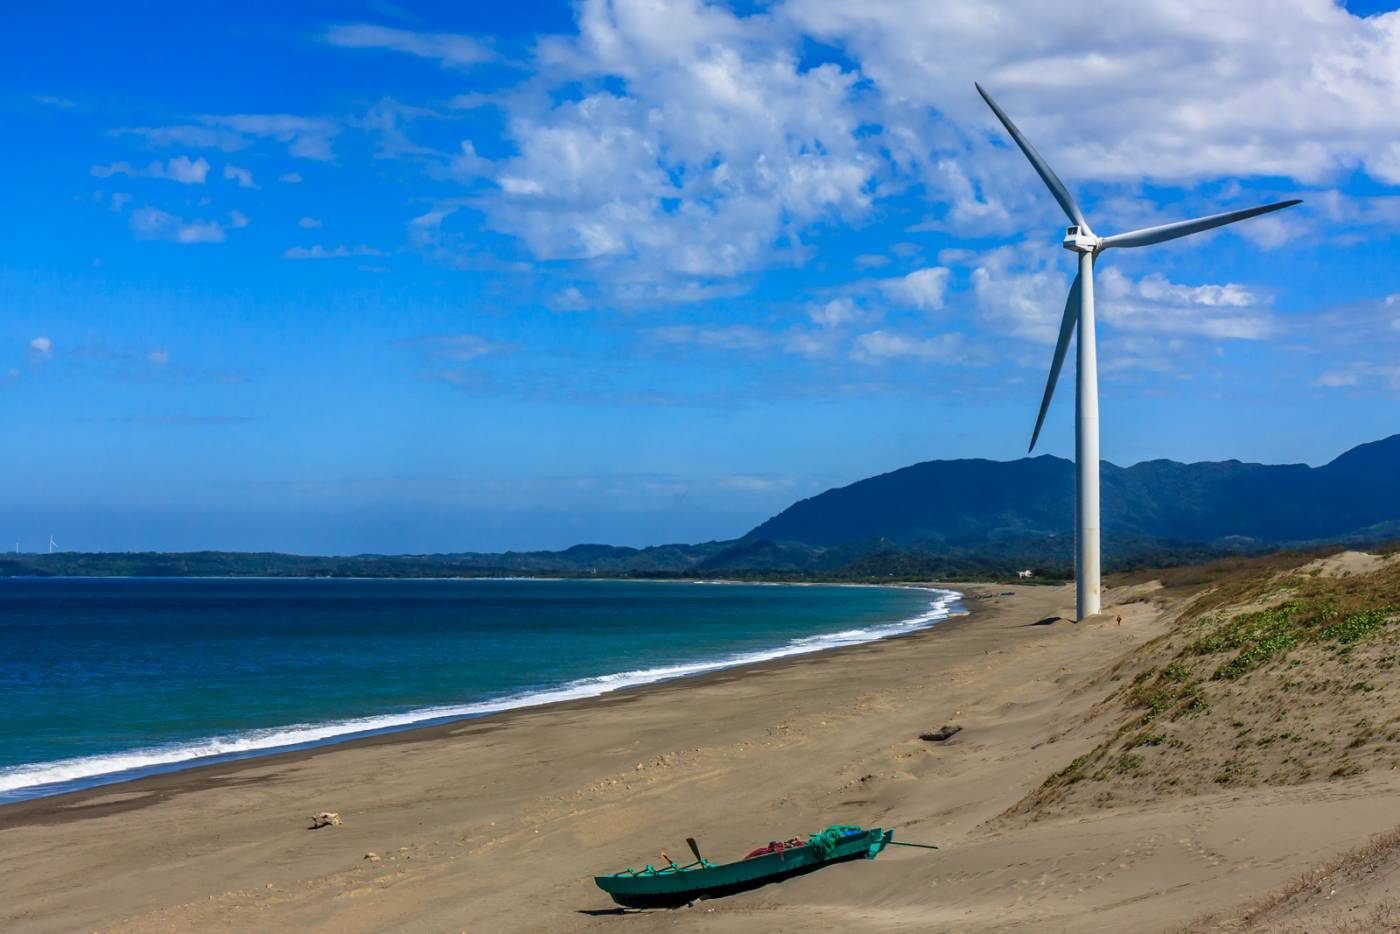 A windmill on the beach.